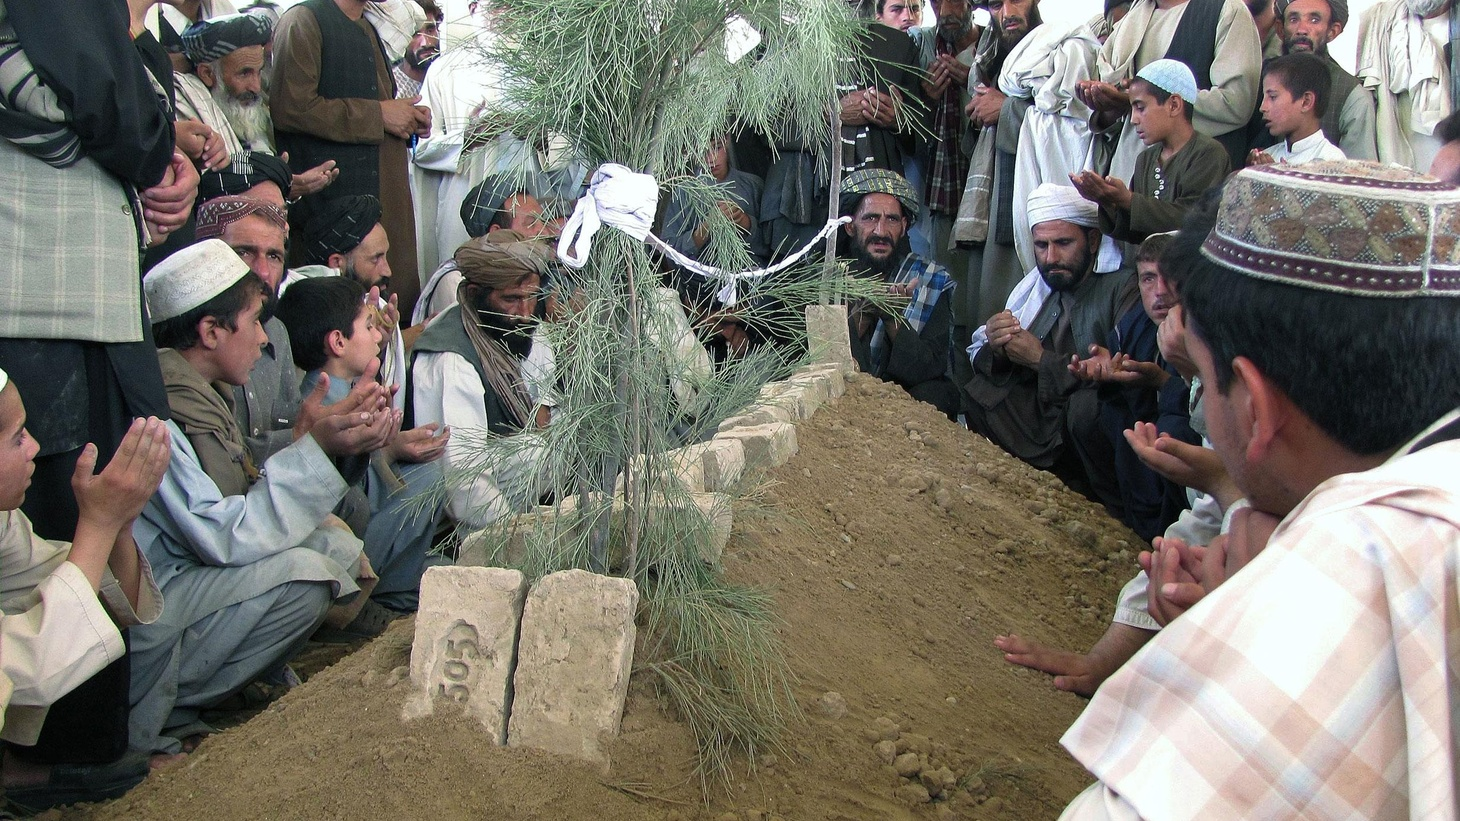 A suicide bomber struck mourners in Kandahar today, further evidence that Afghanistan faces increased violence and further destabilization since the assassination of President Karzai's half-brother...